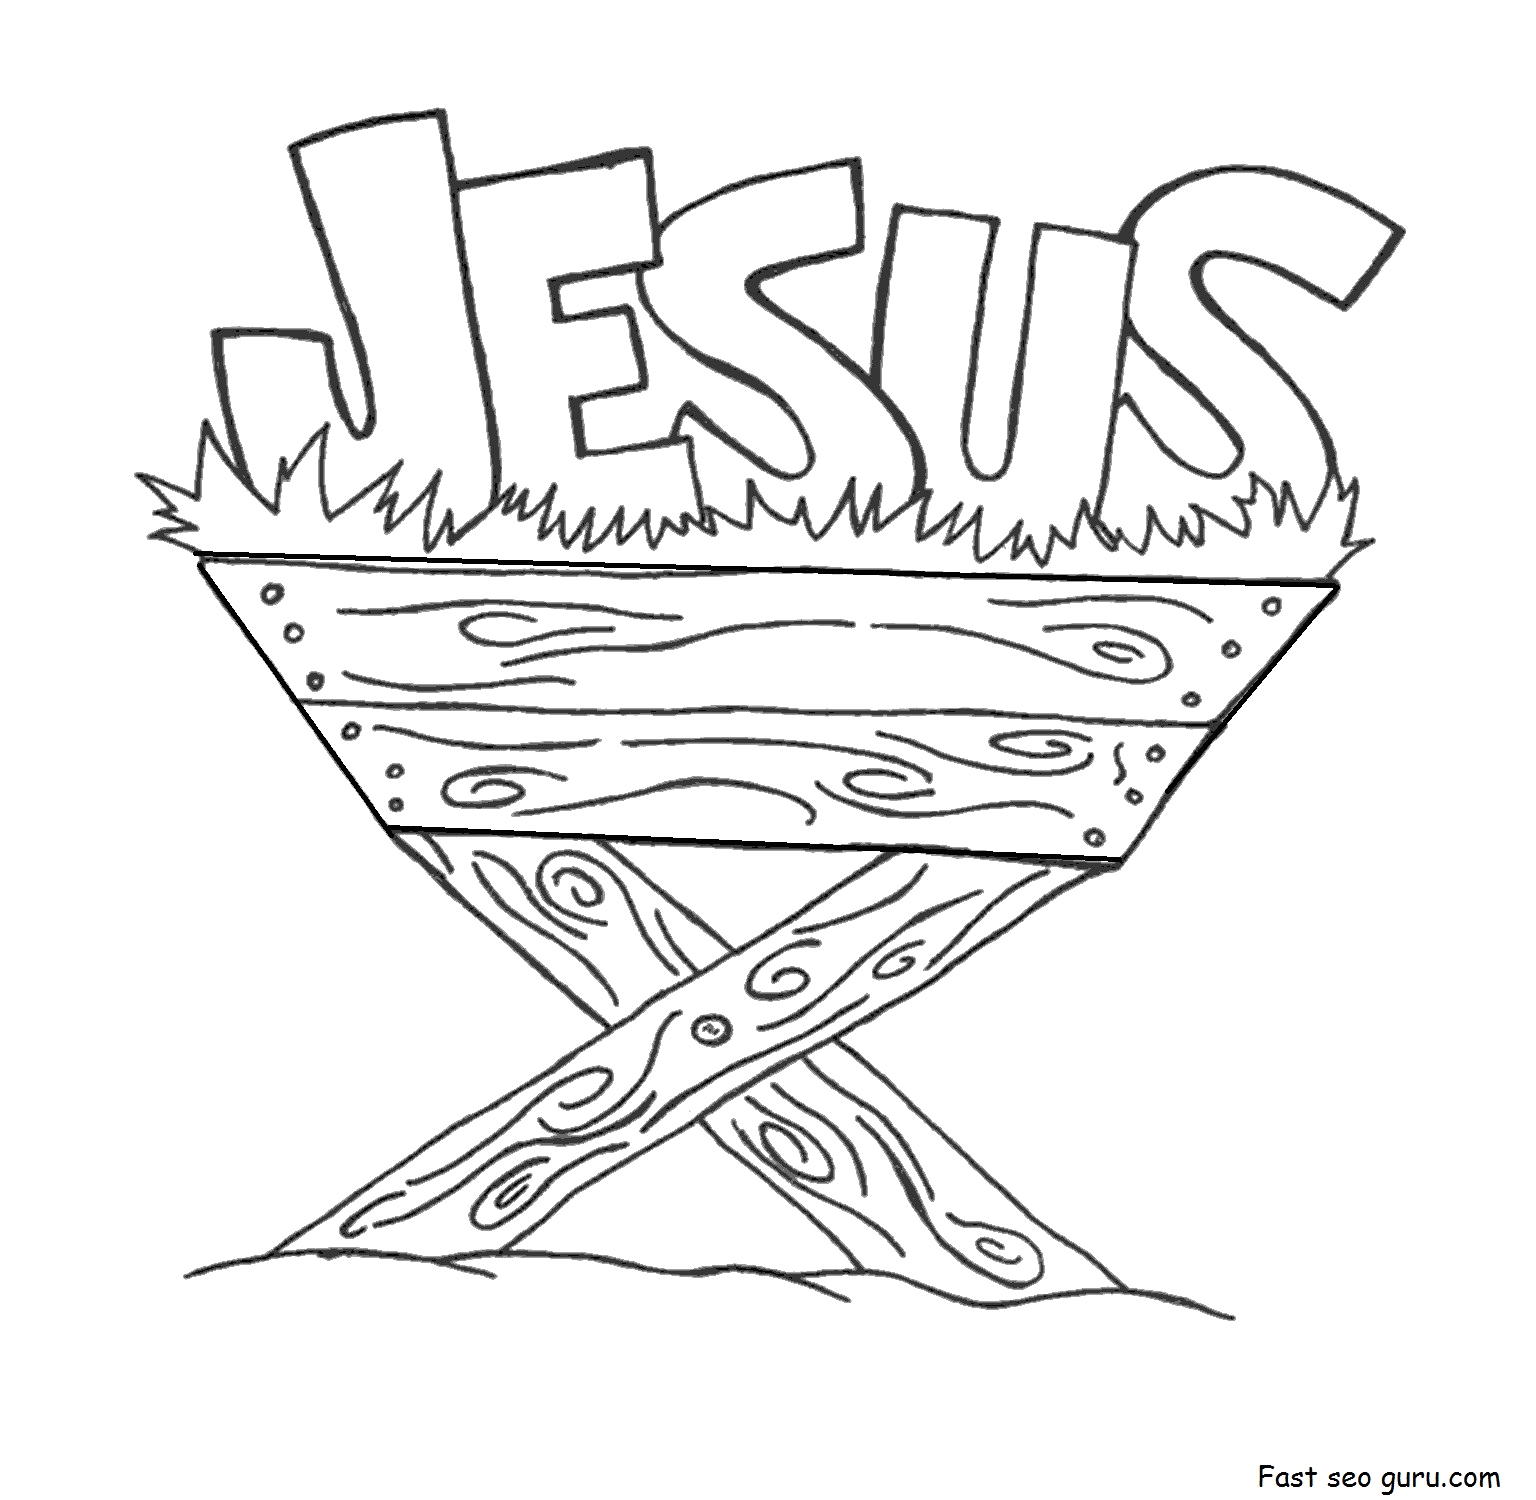 Coloring Page Of Jesus In the Manger Print Out Jesus In the Manger Coloring Pages